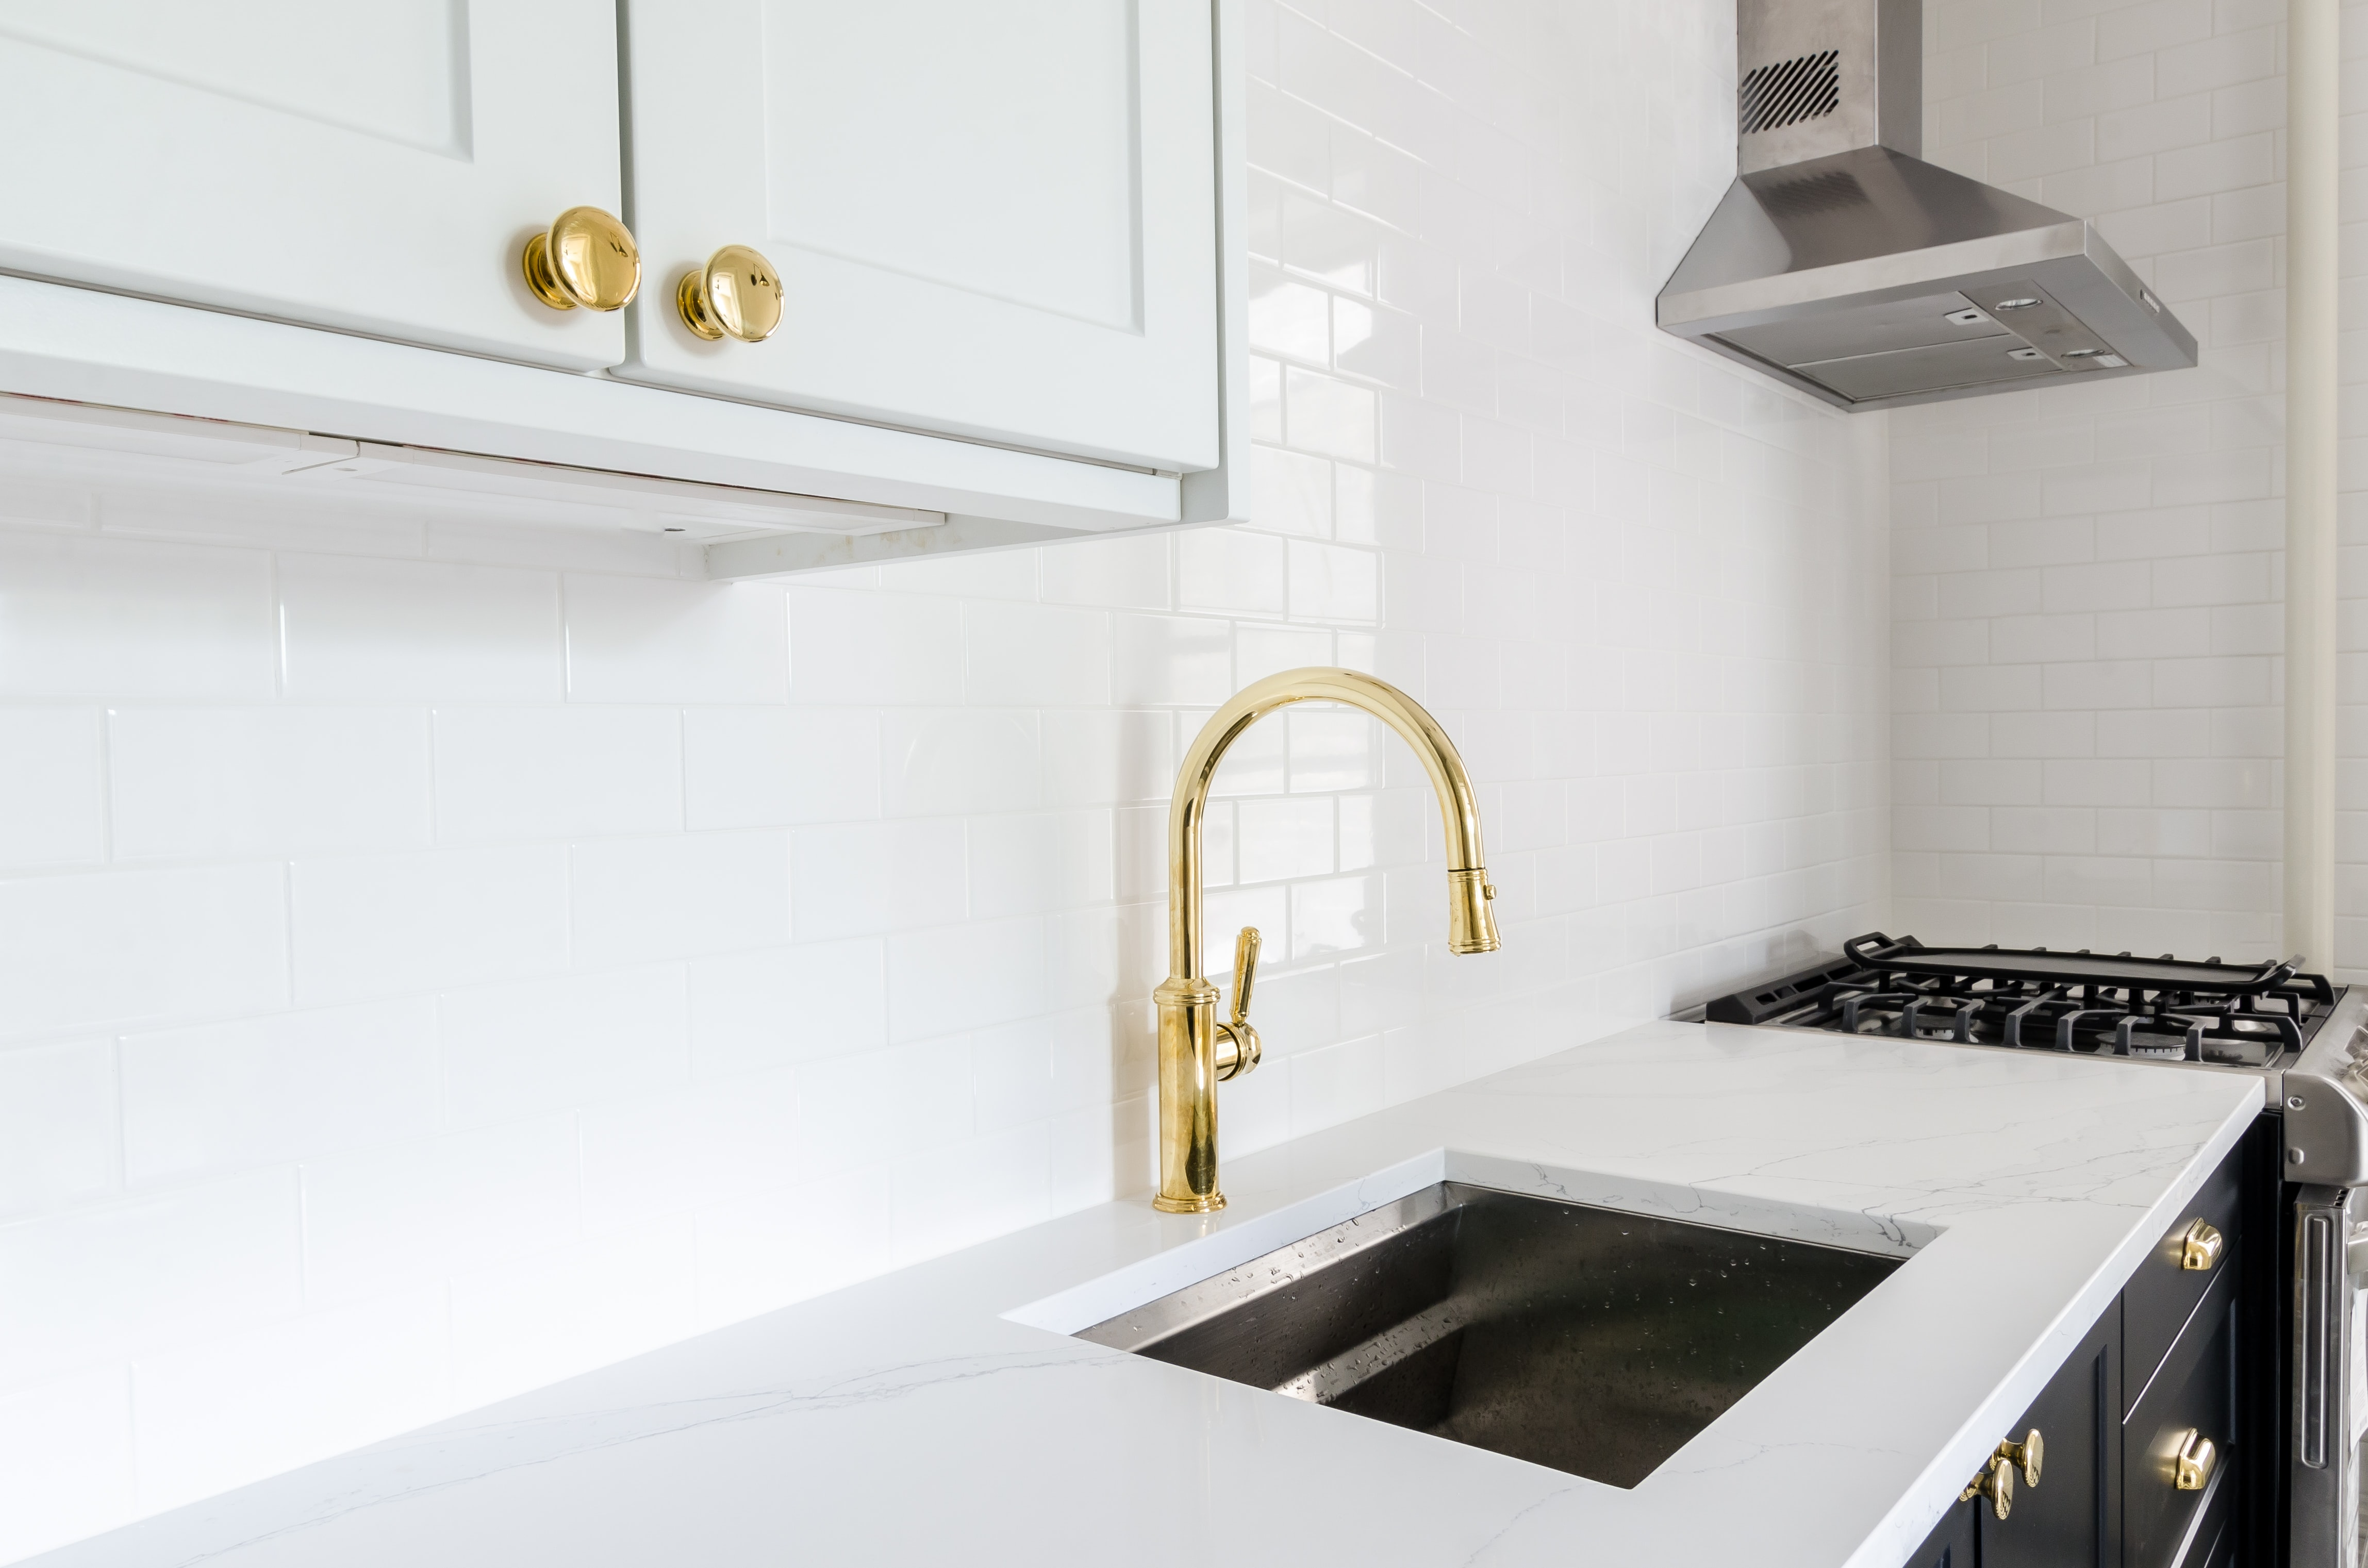 6 Kohler Kitchen Faucets You Should Buy Today Thought Catalog